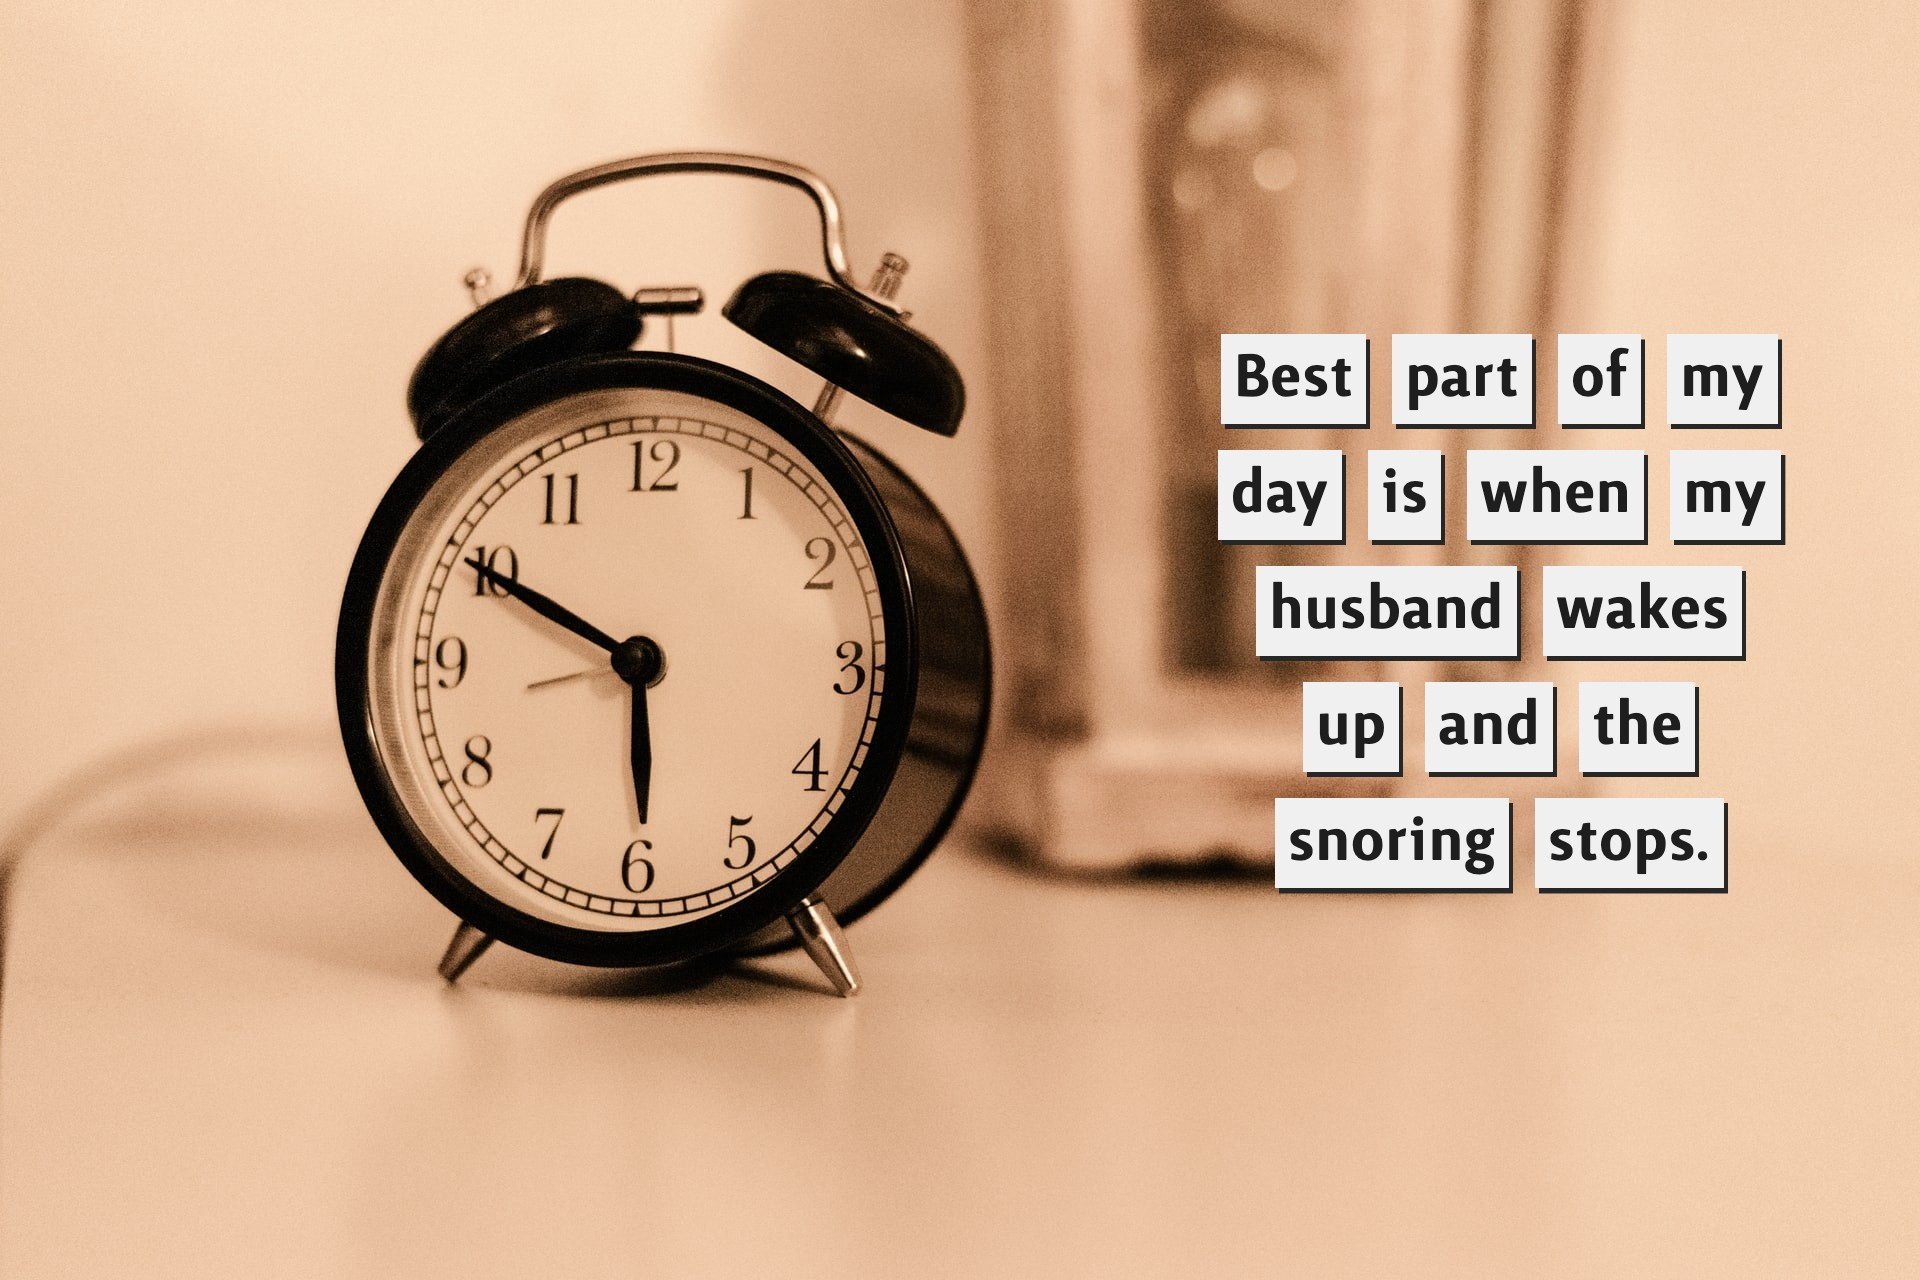 Best part of my day is when my husband wakes up and the snoring stops.